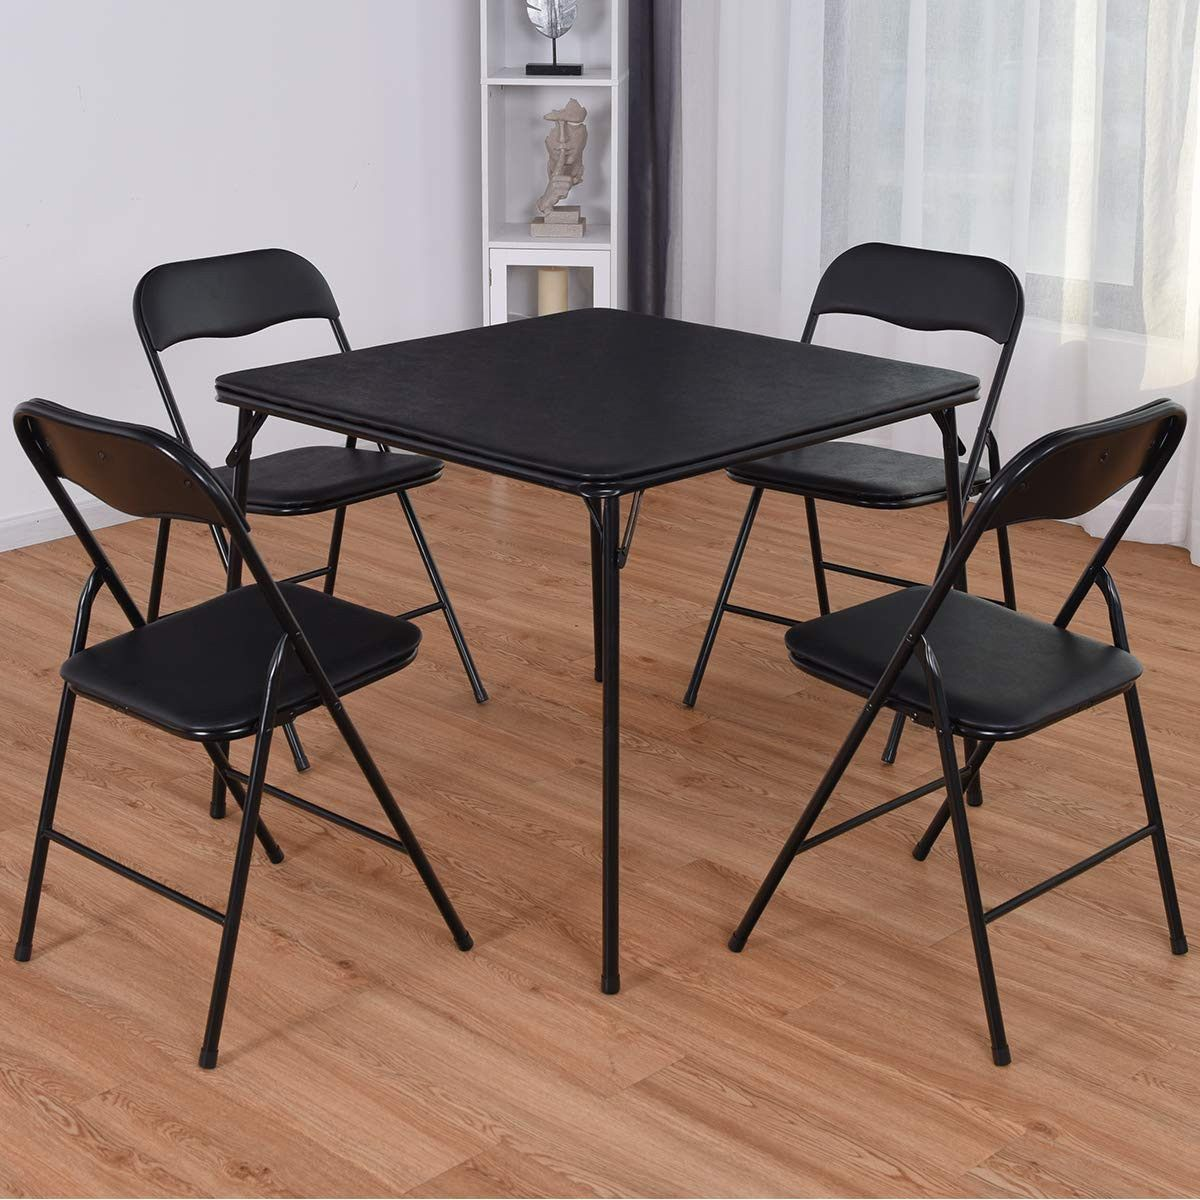 Folding Card Table And Chairs 5 Pc Set Card Table And Chairs Folding Table Table And Chair Sets